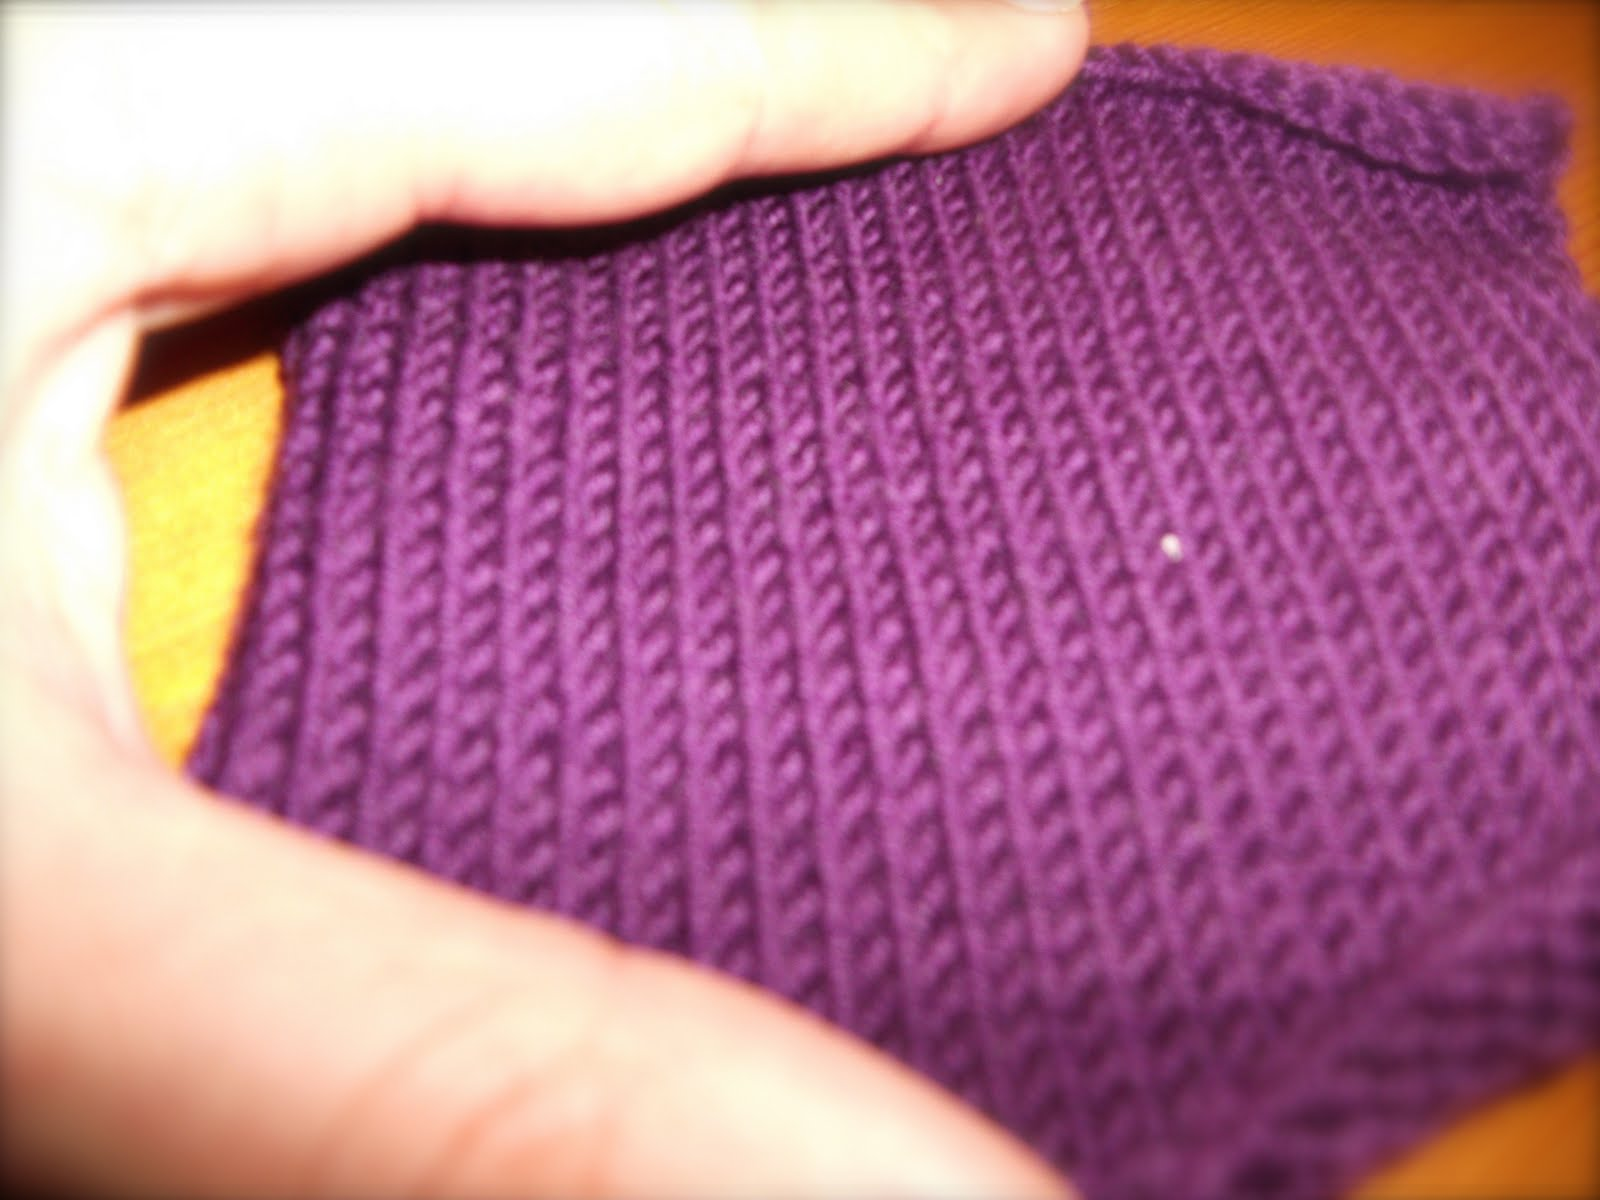 Knitting Gauge Definition : Dillpickle unfinished a question of gauge and stitch